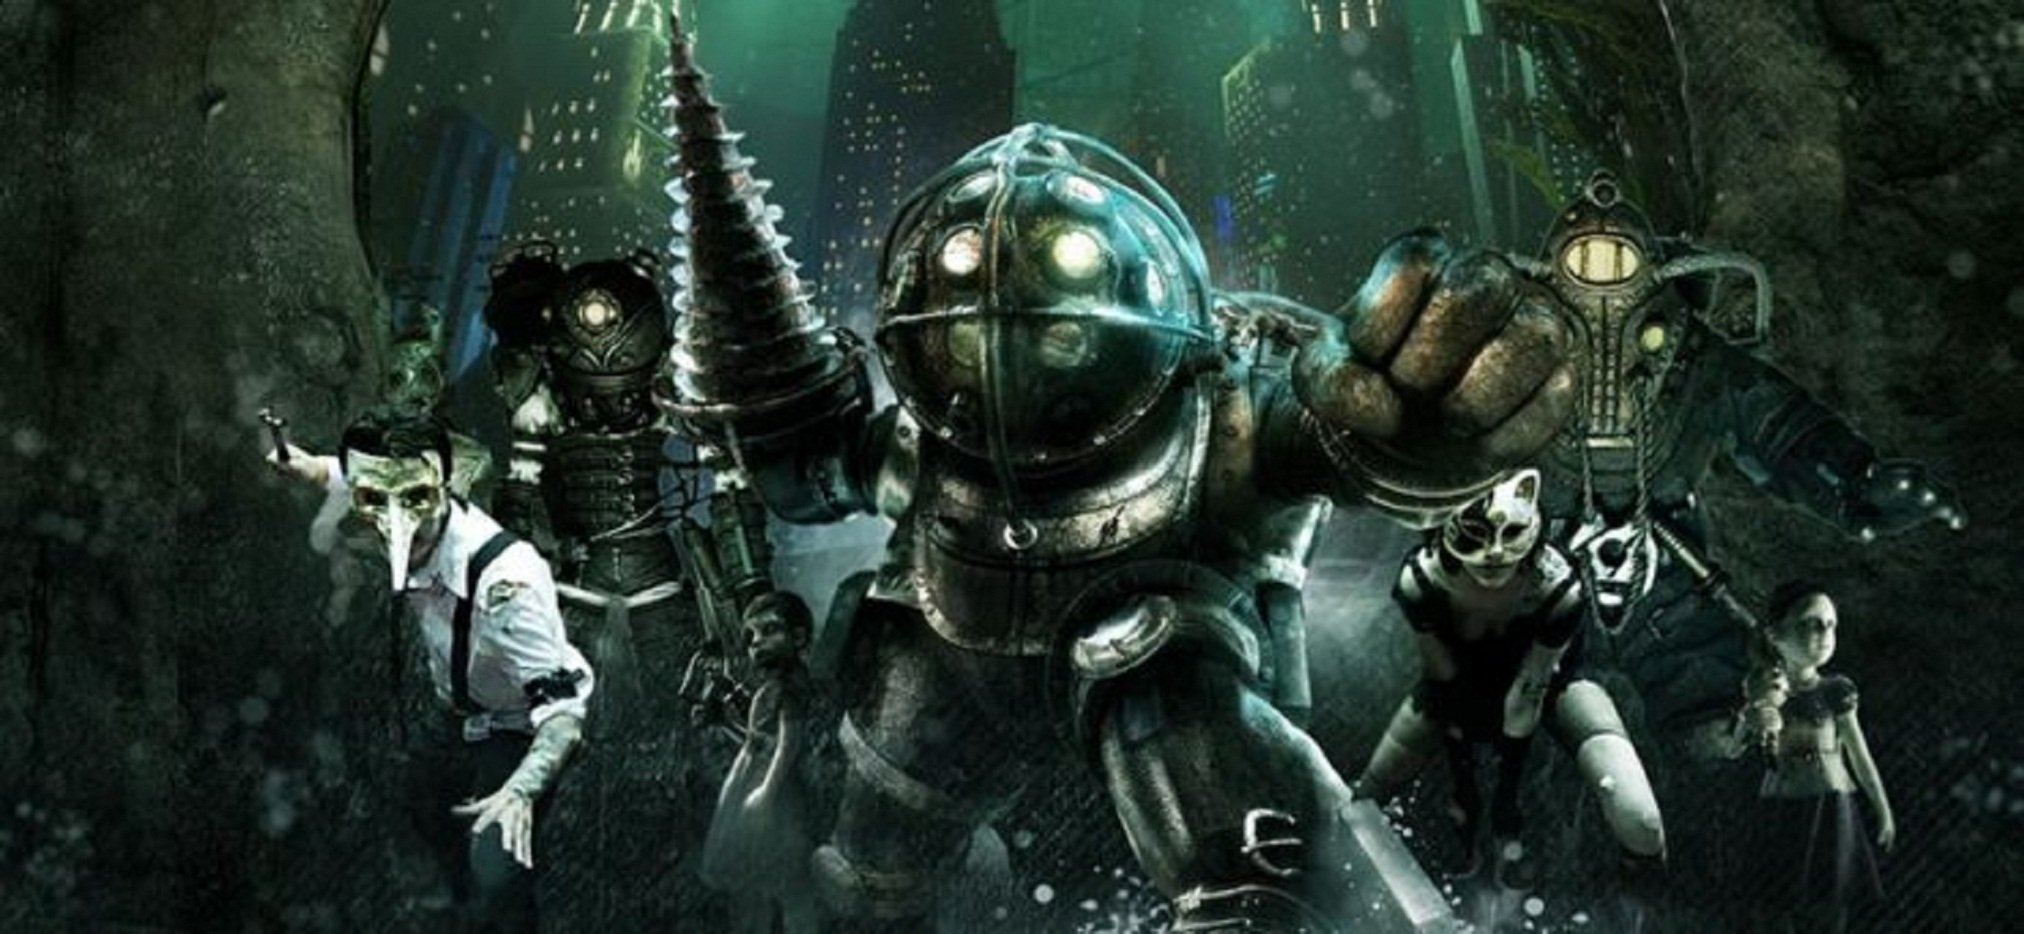 BioShock: The Collection Short Nintendo Switch Review – Launches On Switch Fully Remastered With A Comprehensive DLC